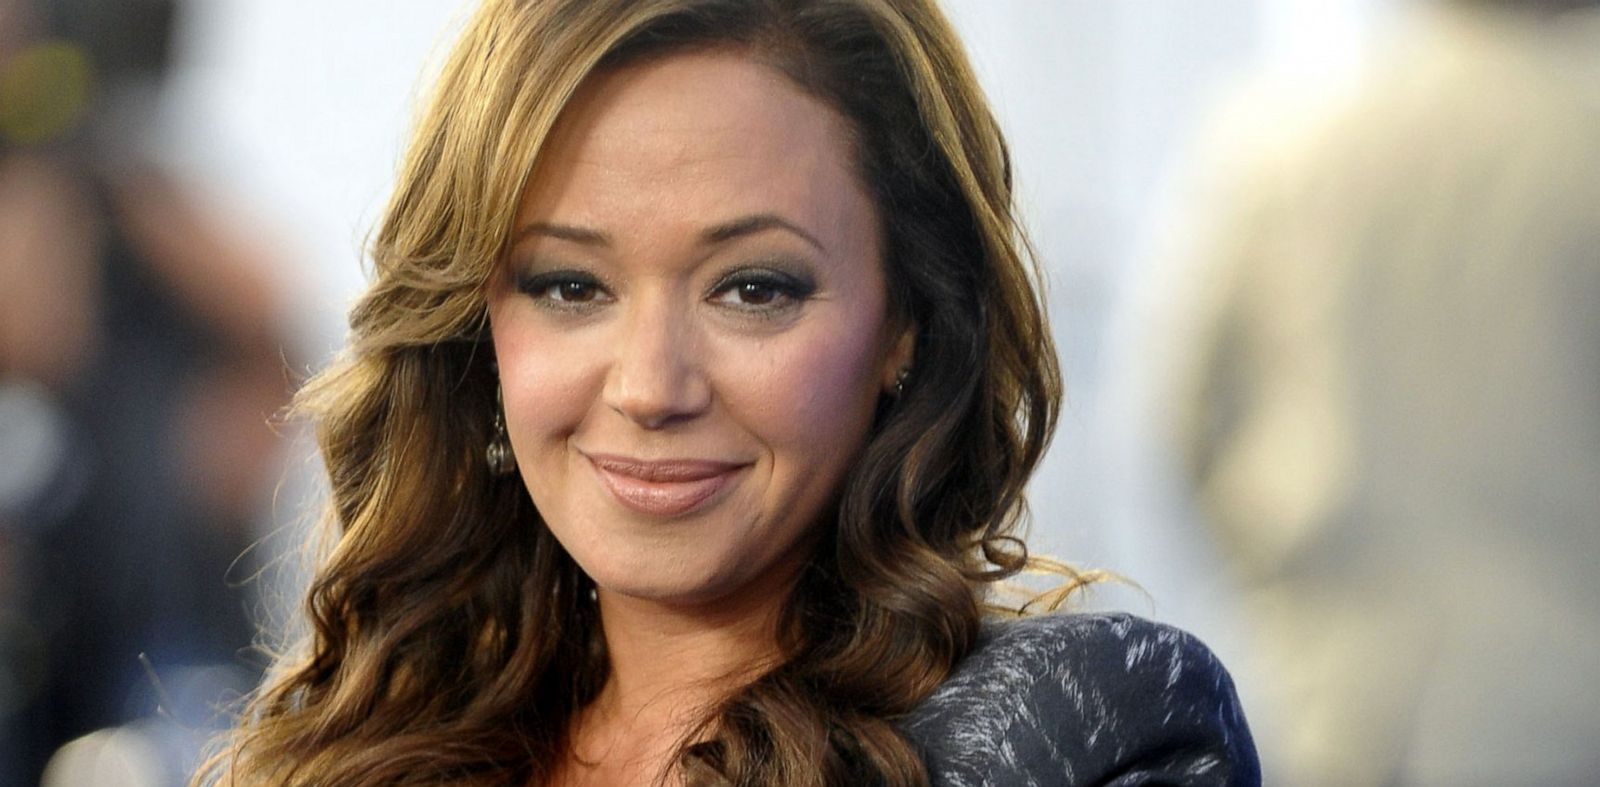 PHOTO: leah remini